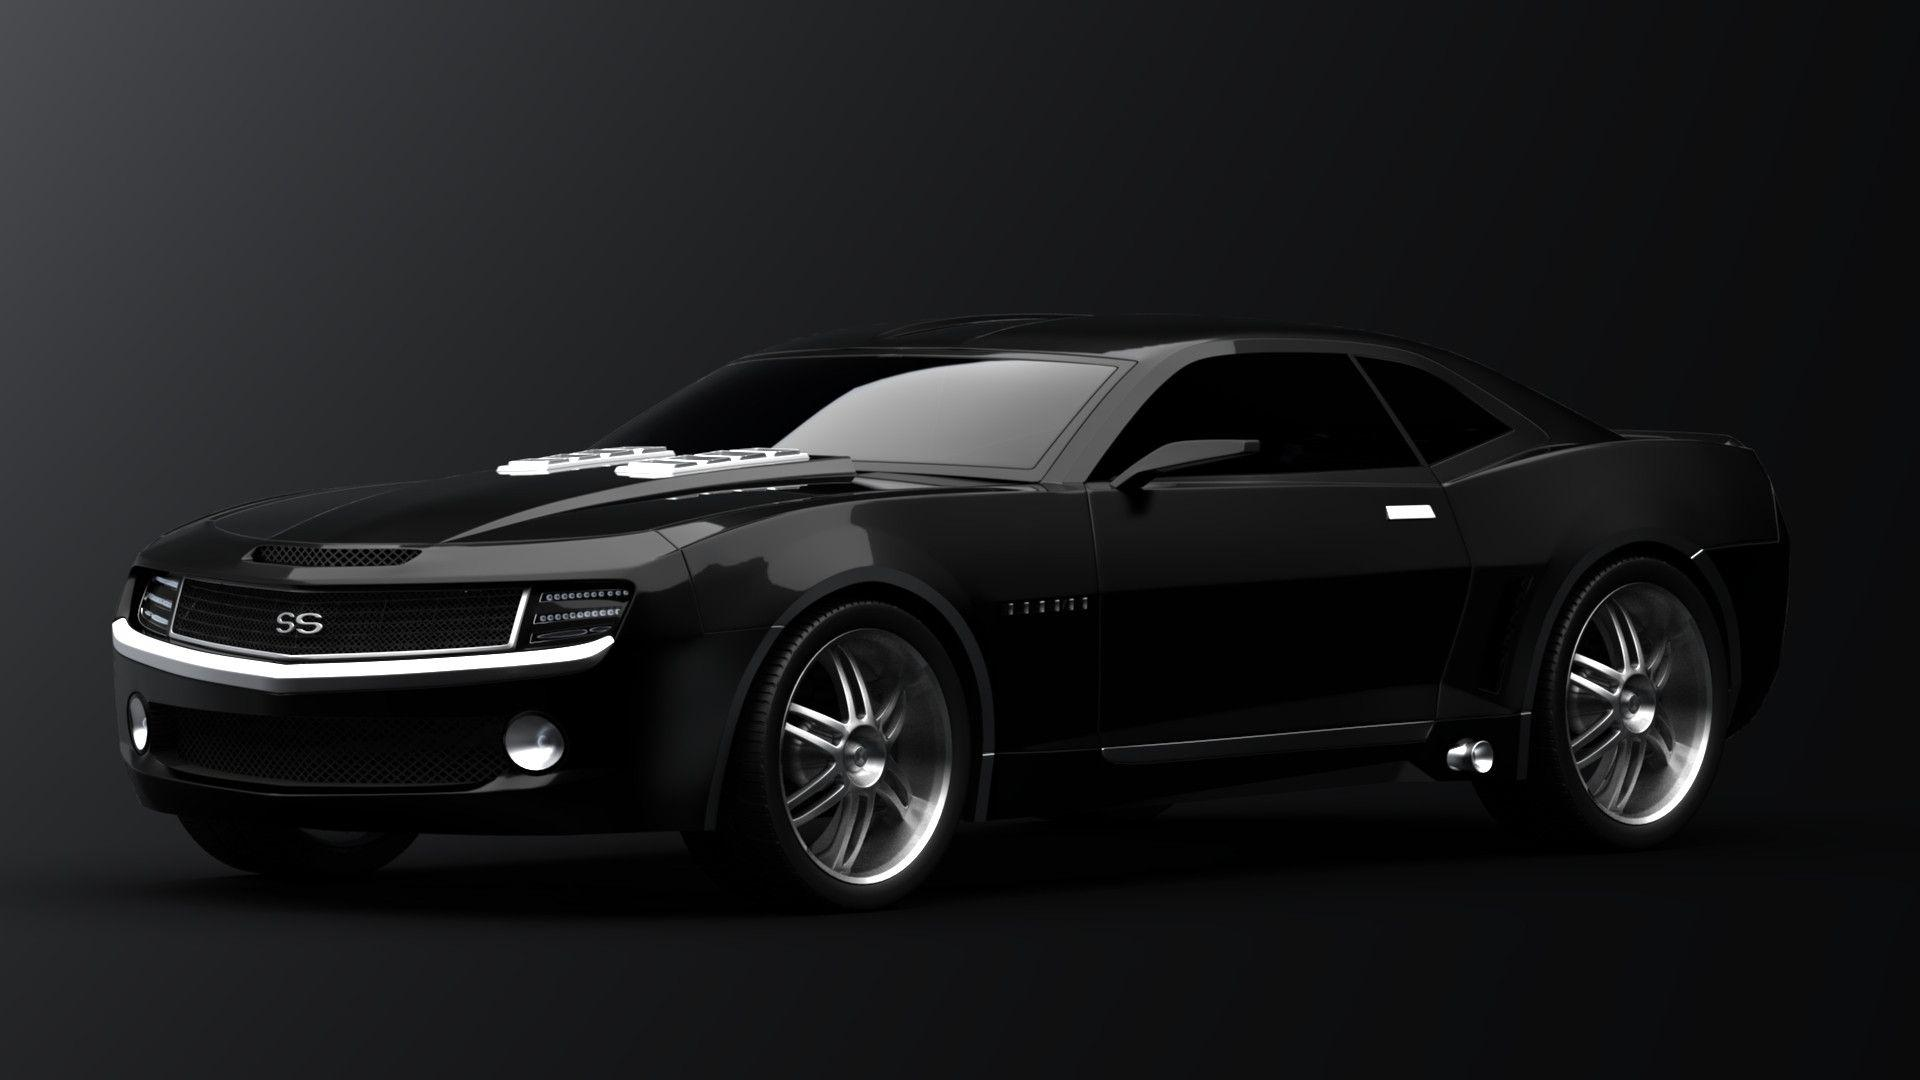 camaro ss wallpapers wallpaper cave